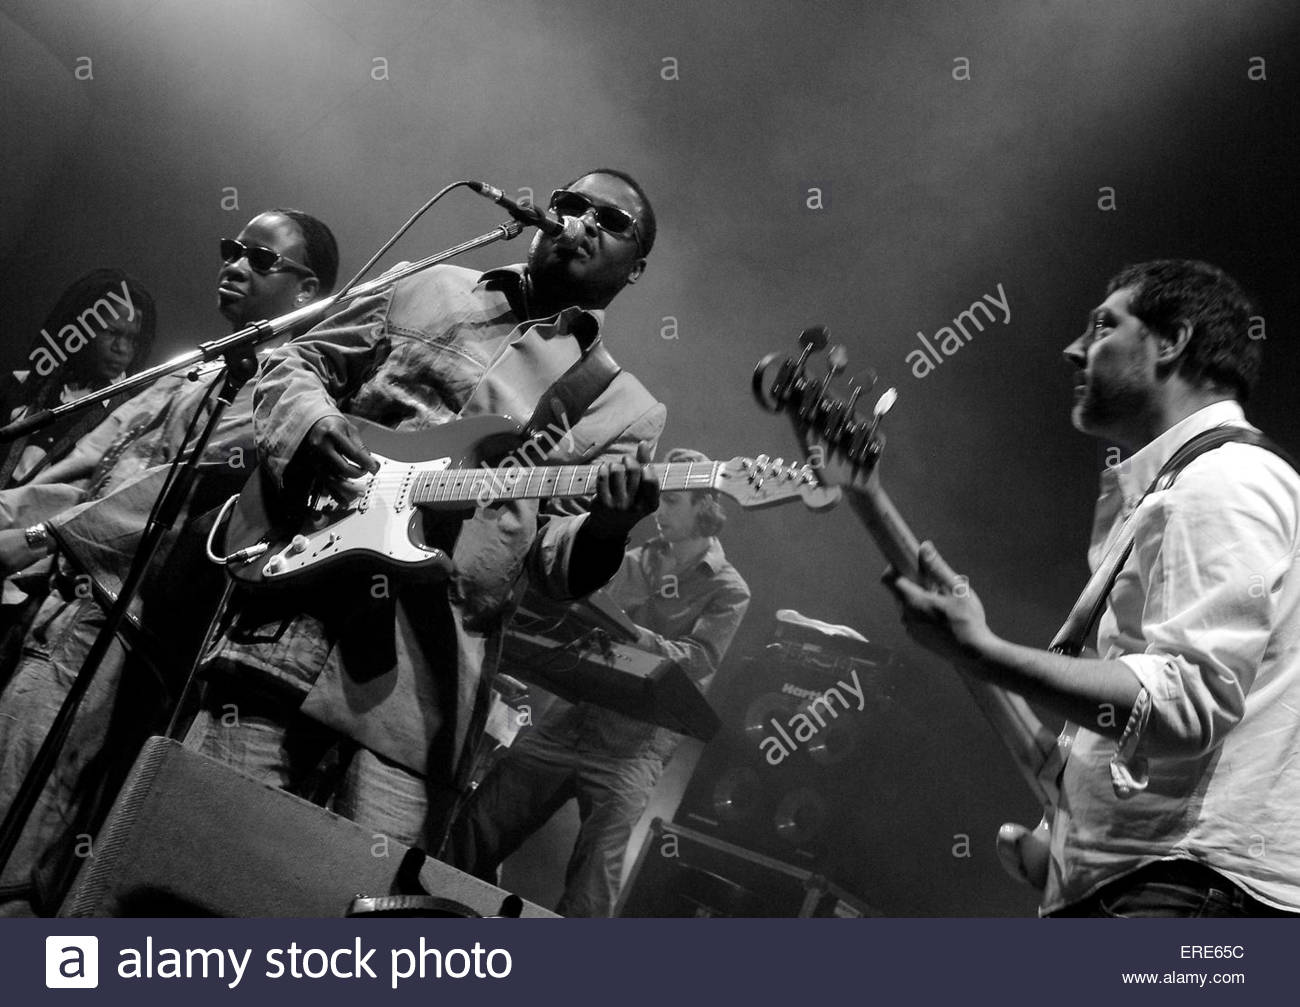 African Soul Rebels performing at The Colston Hall - Stock Image